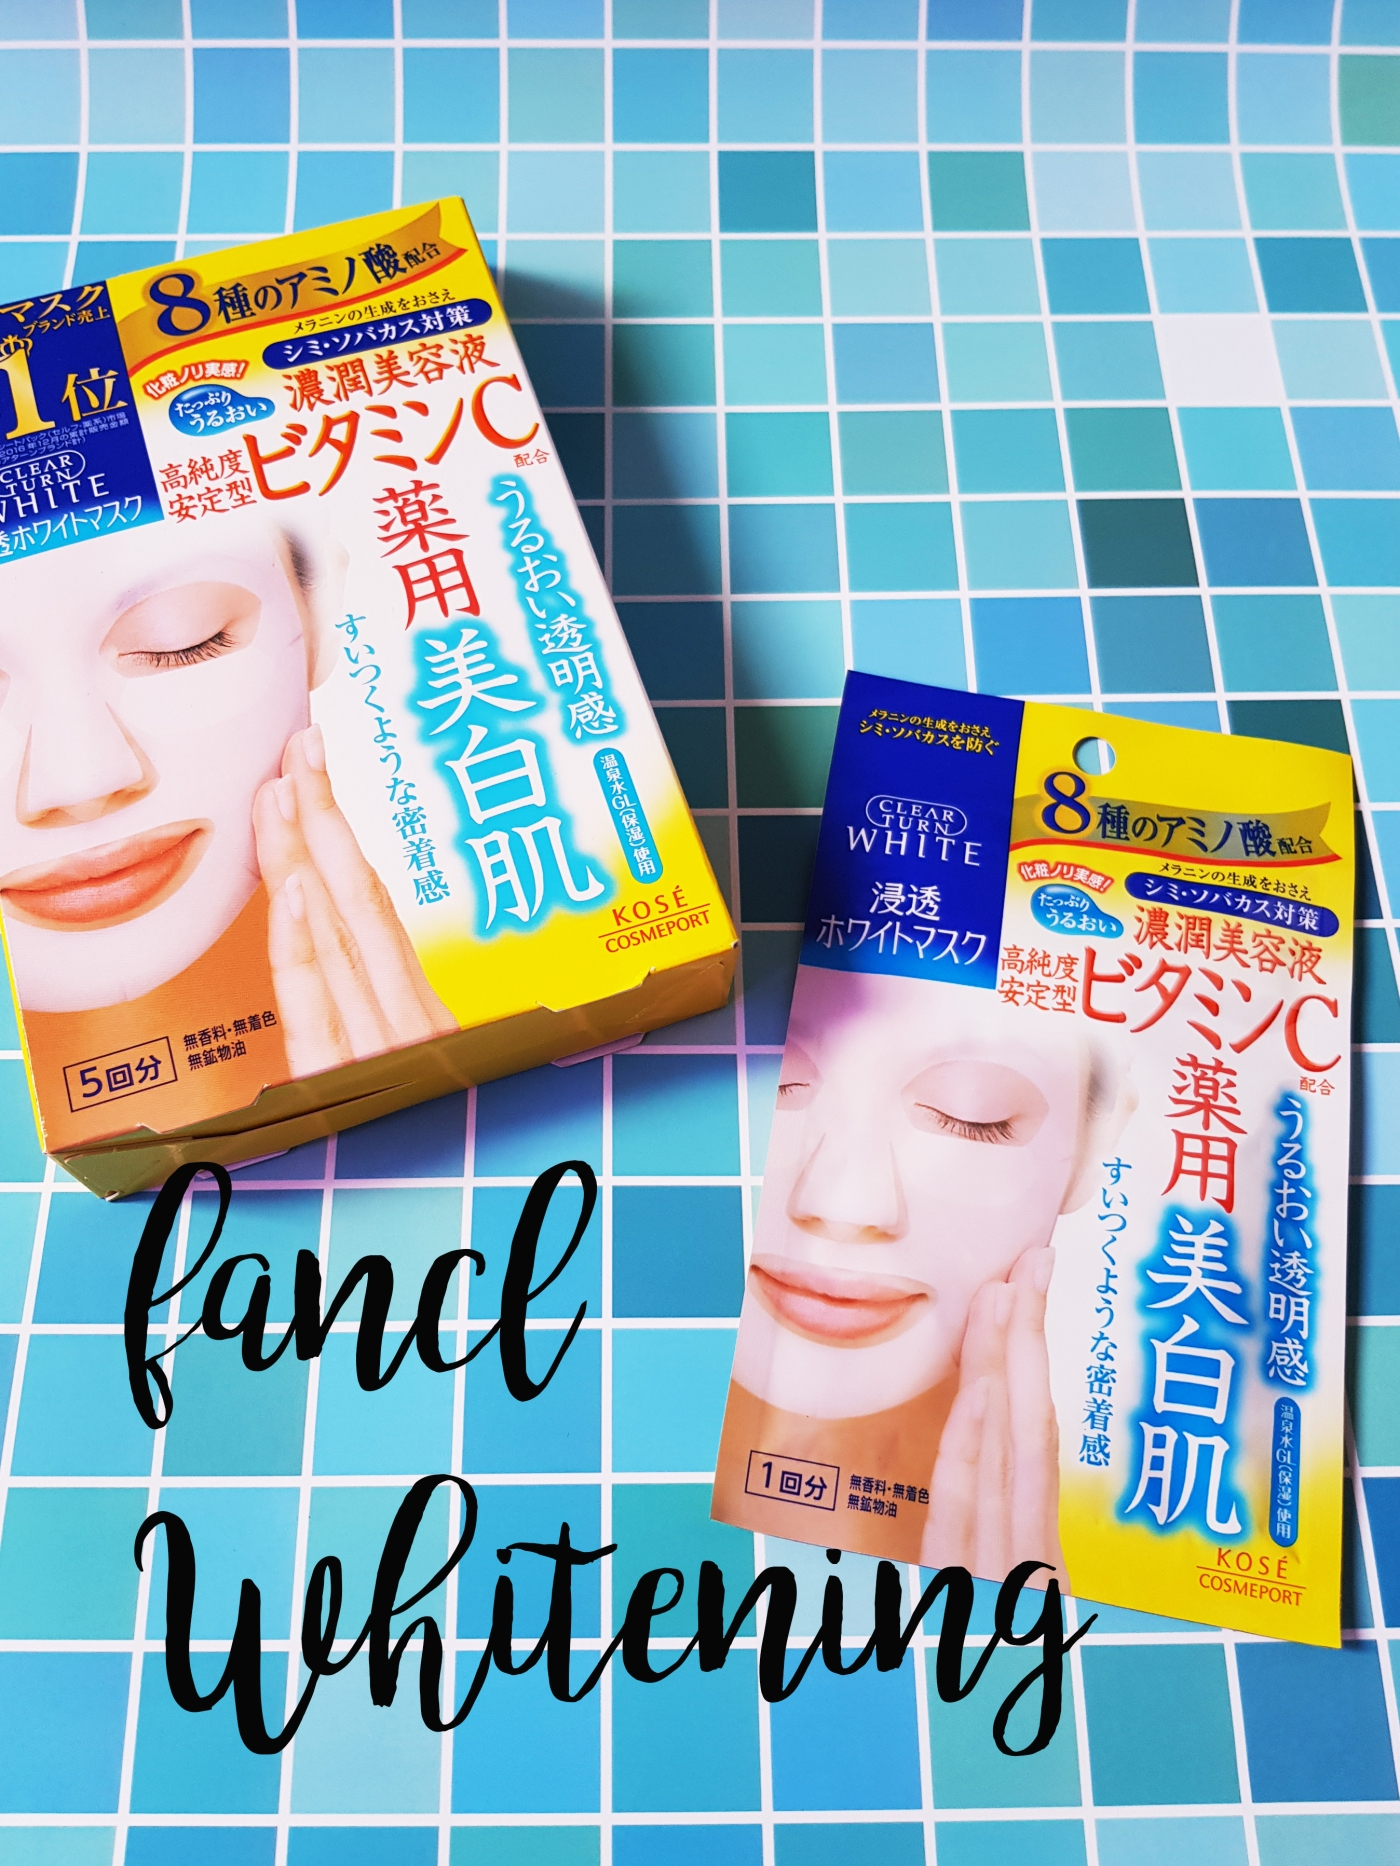 fancl vitamin c whitening facial mask